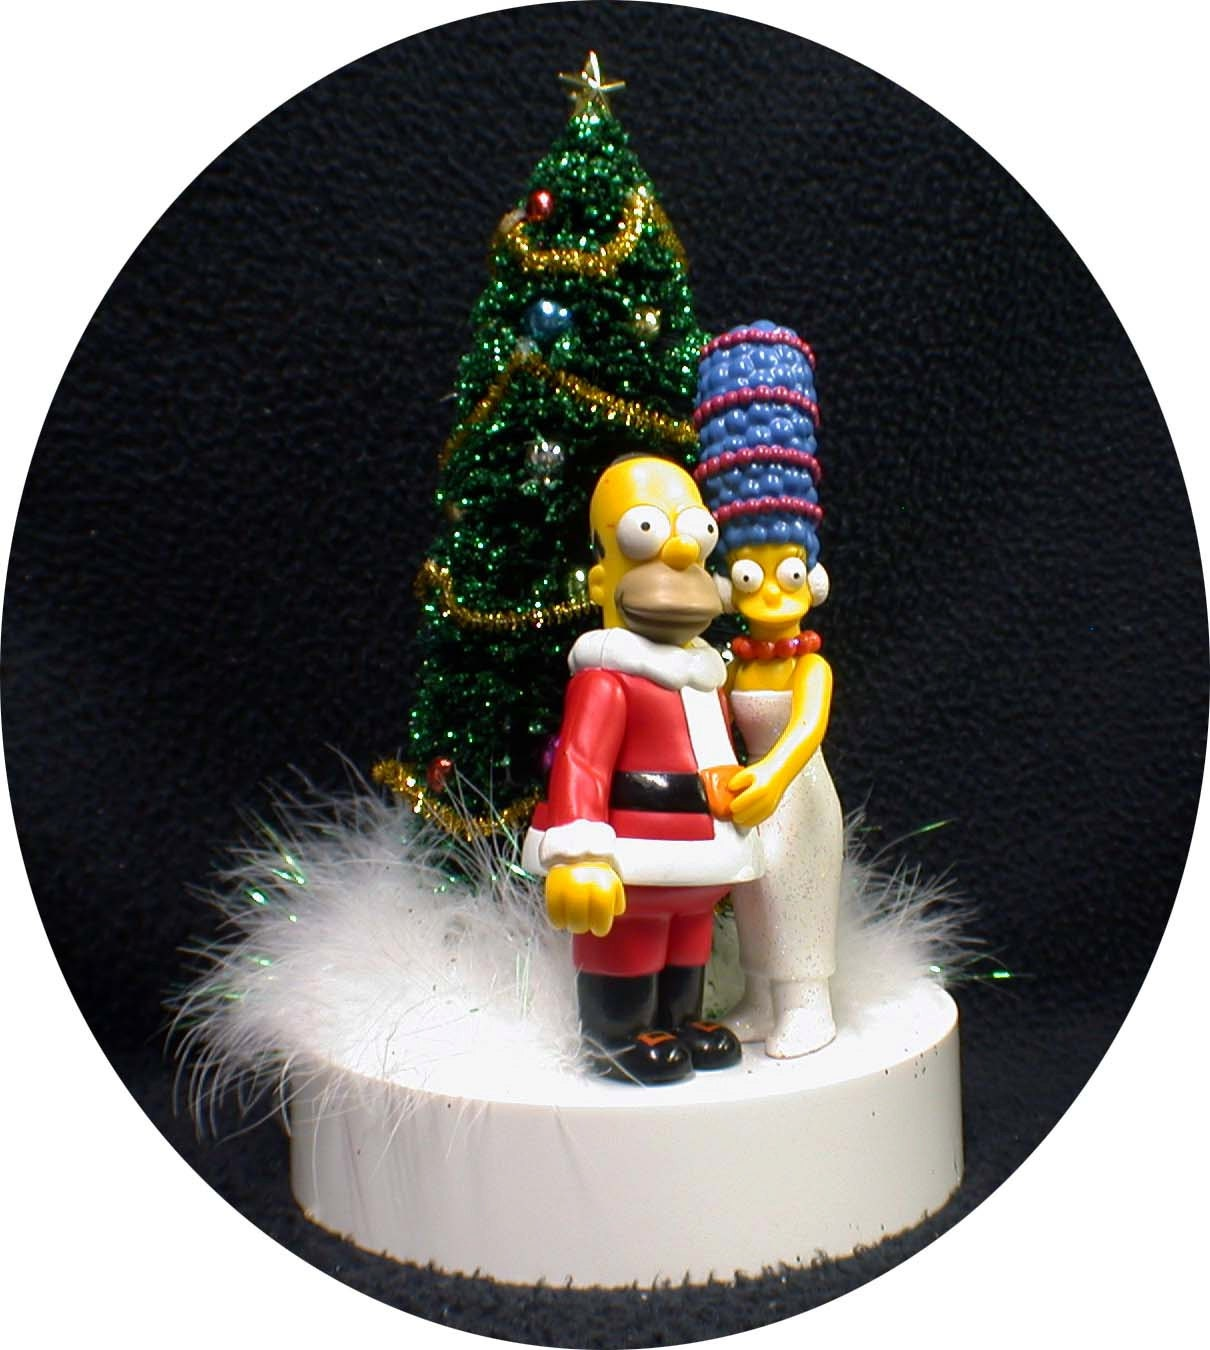 Homer & Marge Simpsons Wedding Cake Topper Christmas Tree with